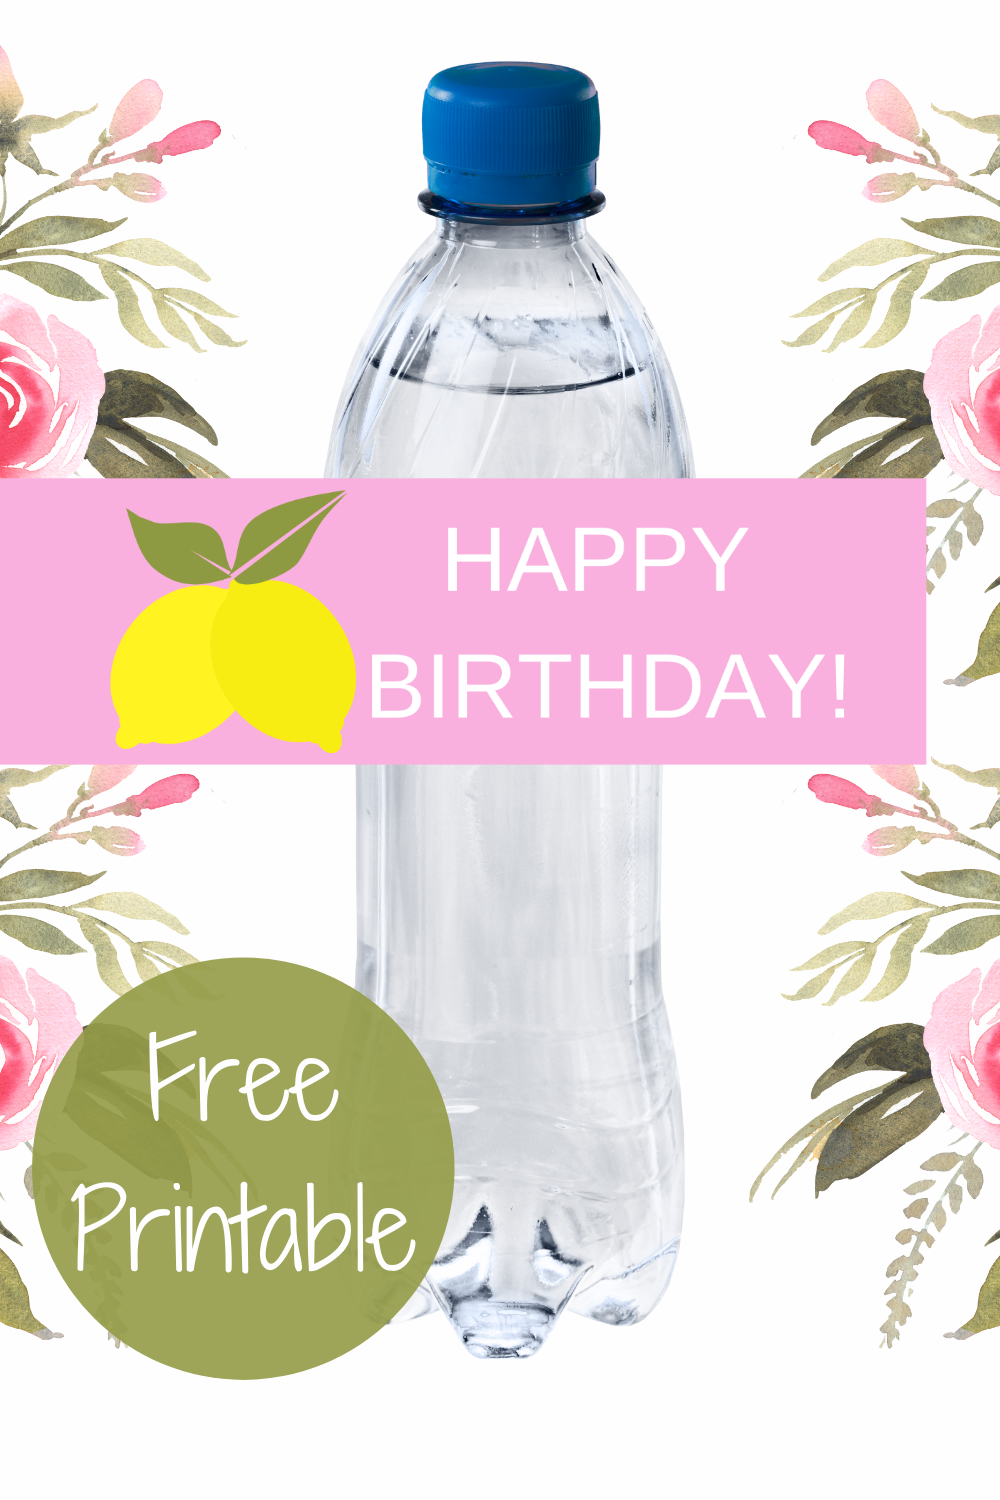 free download: lemon water bottle label for girls birthday party